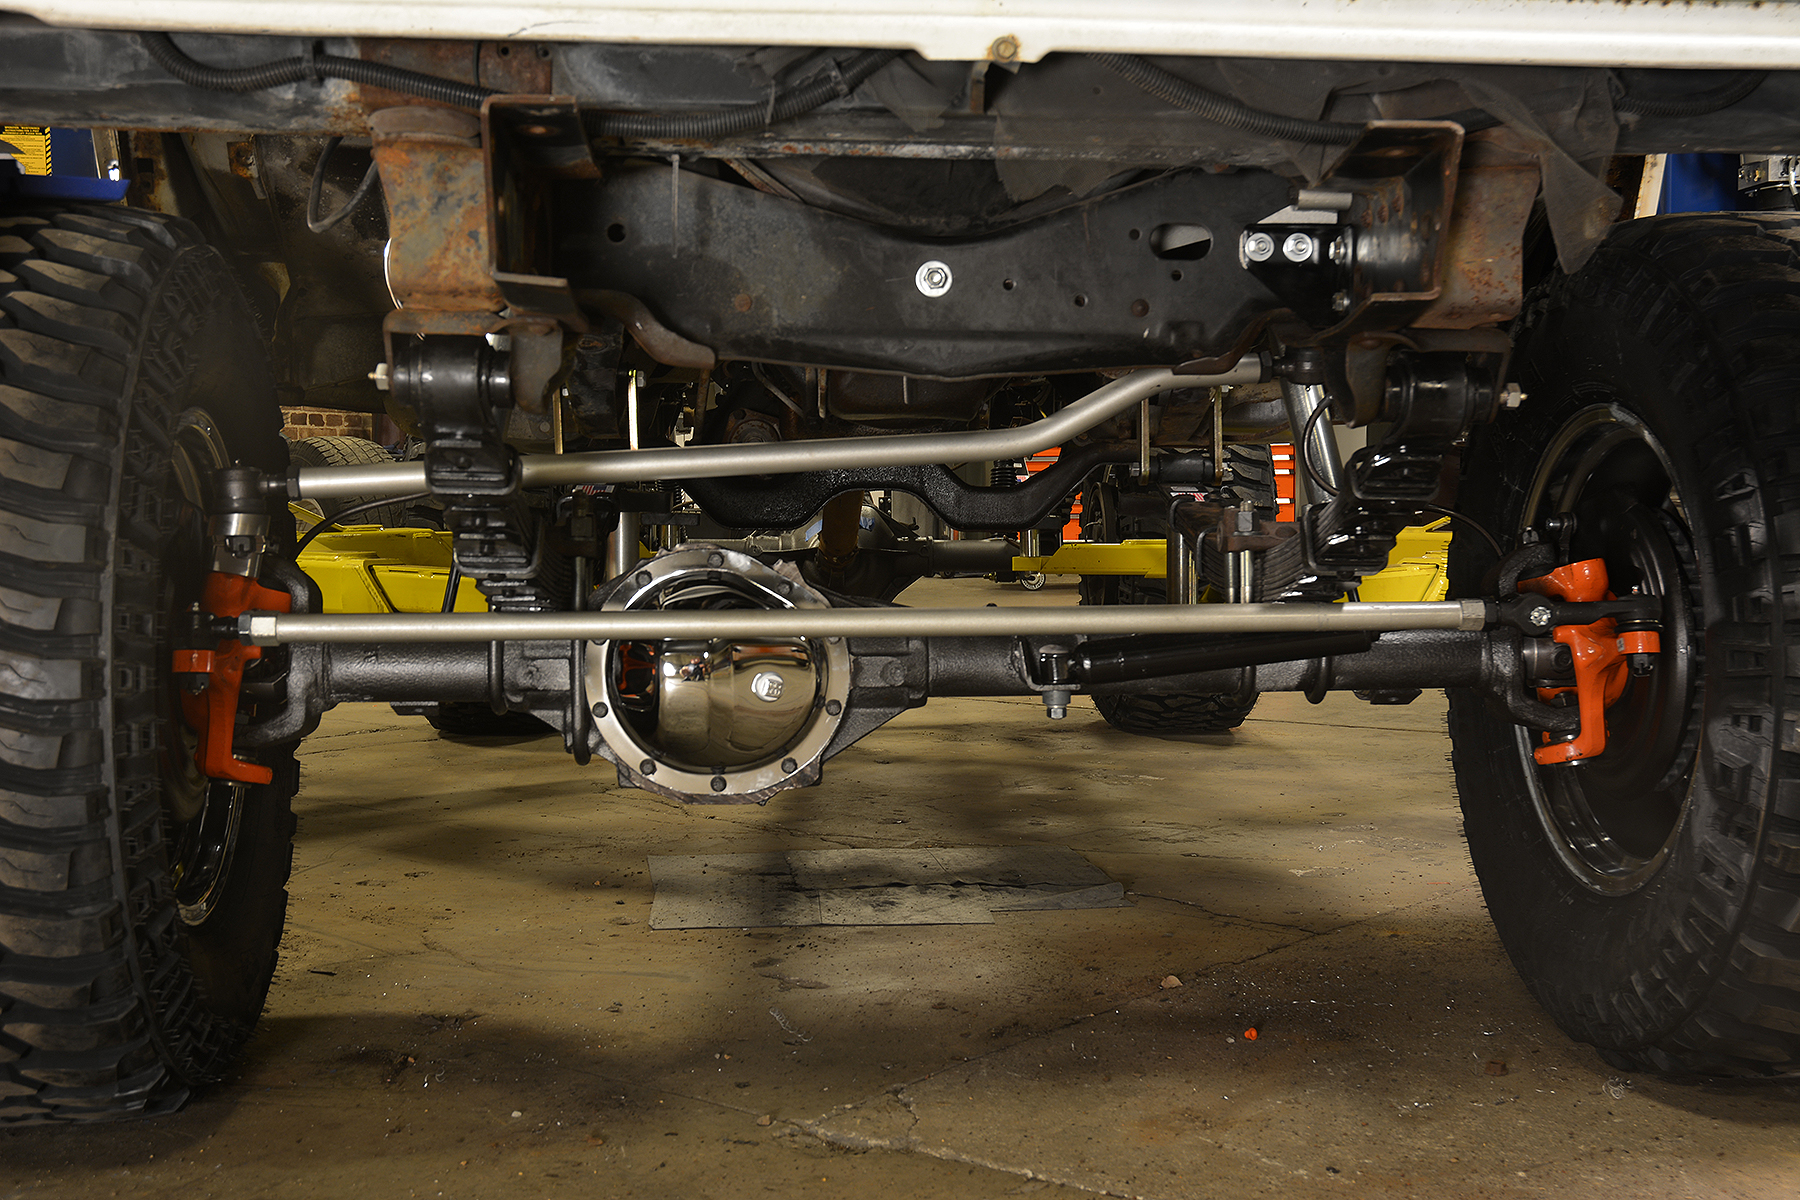 Stunt Double front suspension